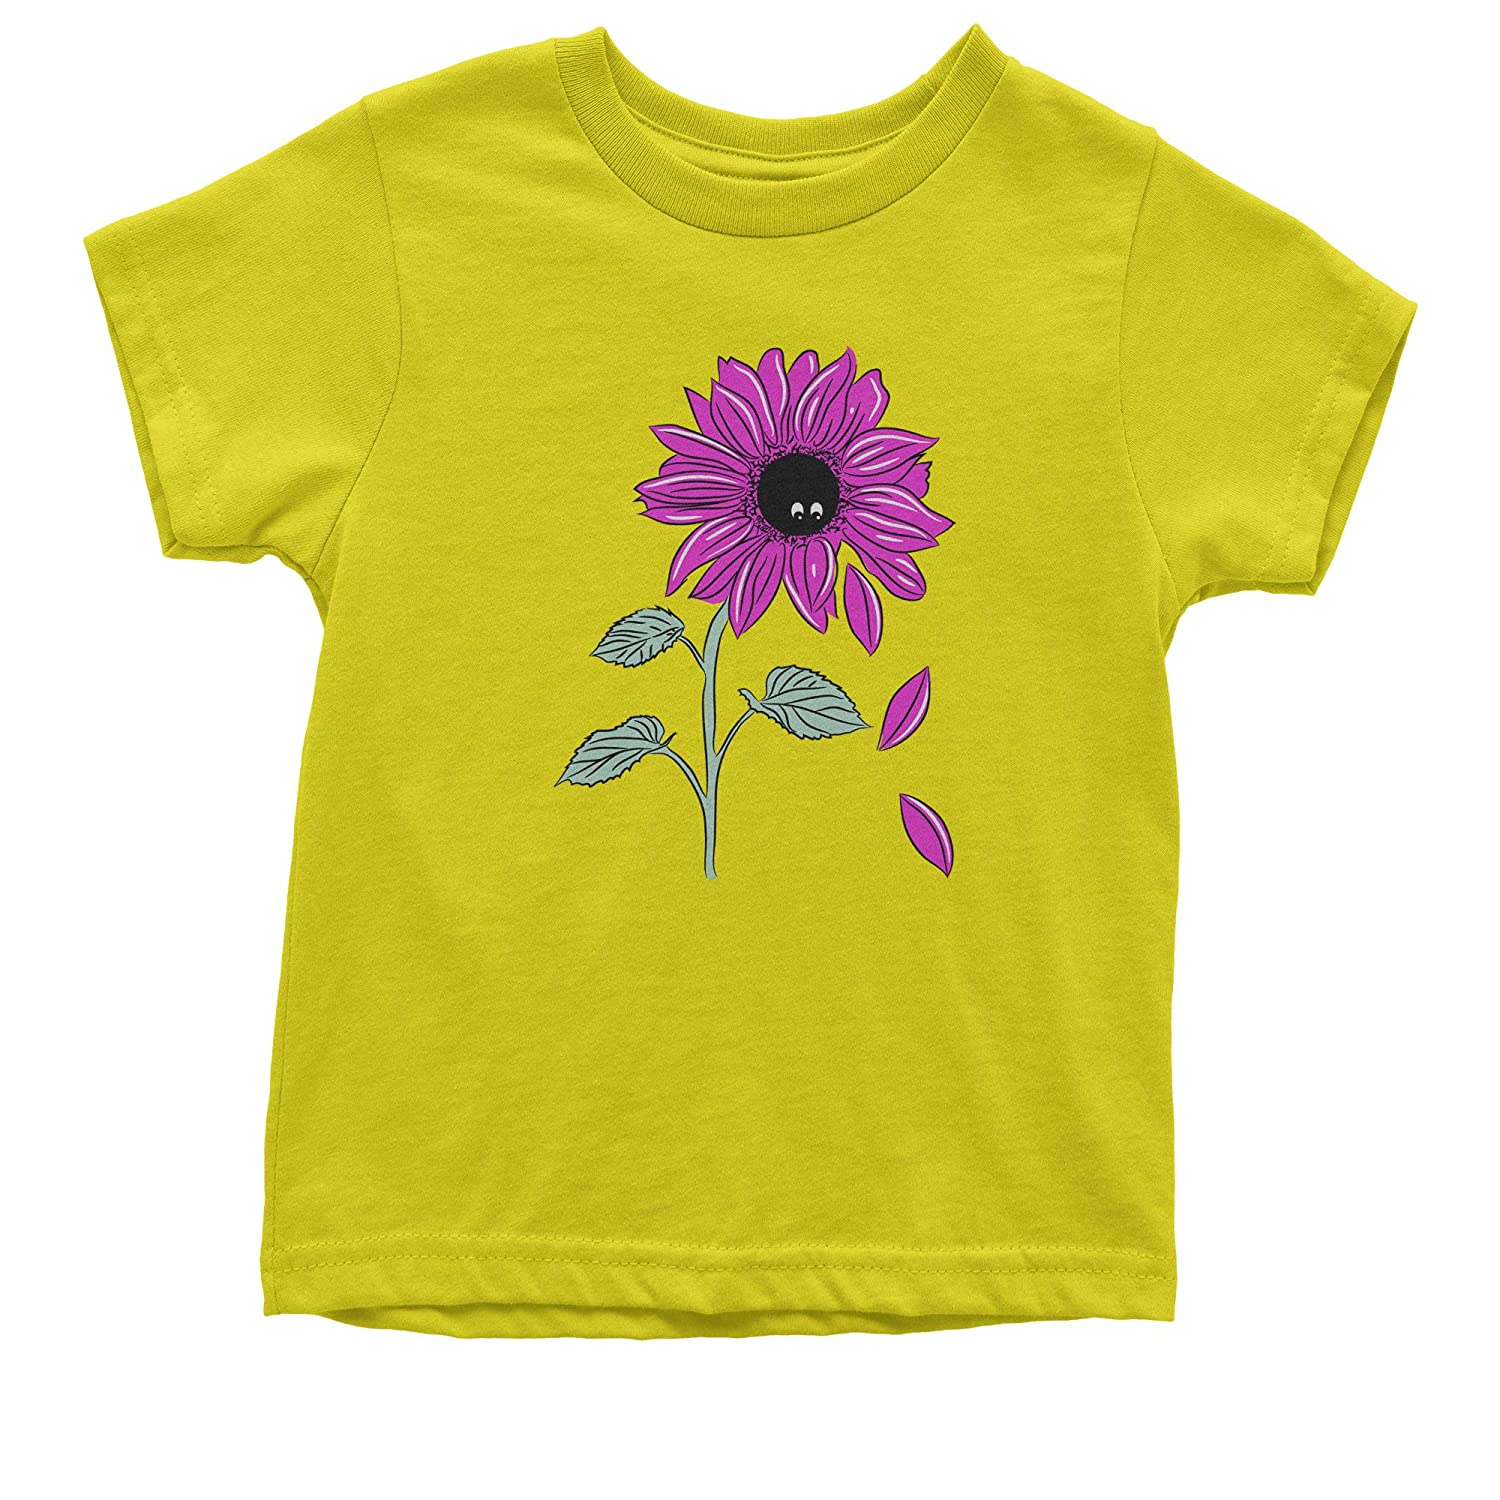 Expression Tees Pink Sunflower Youth T-Shirt